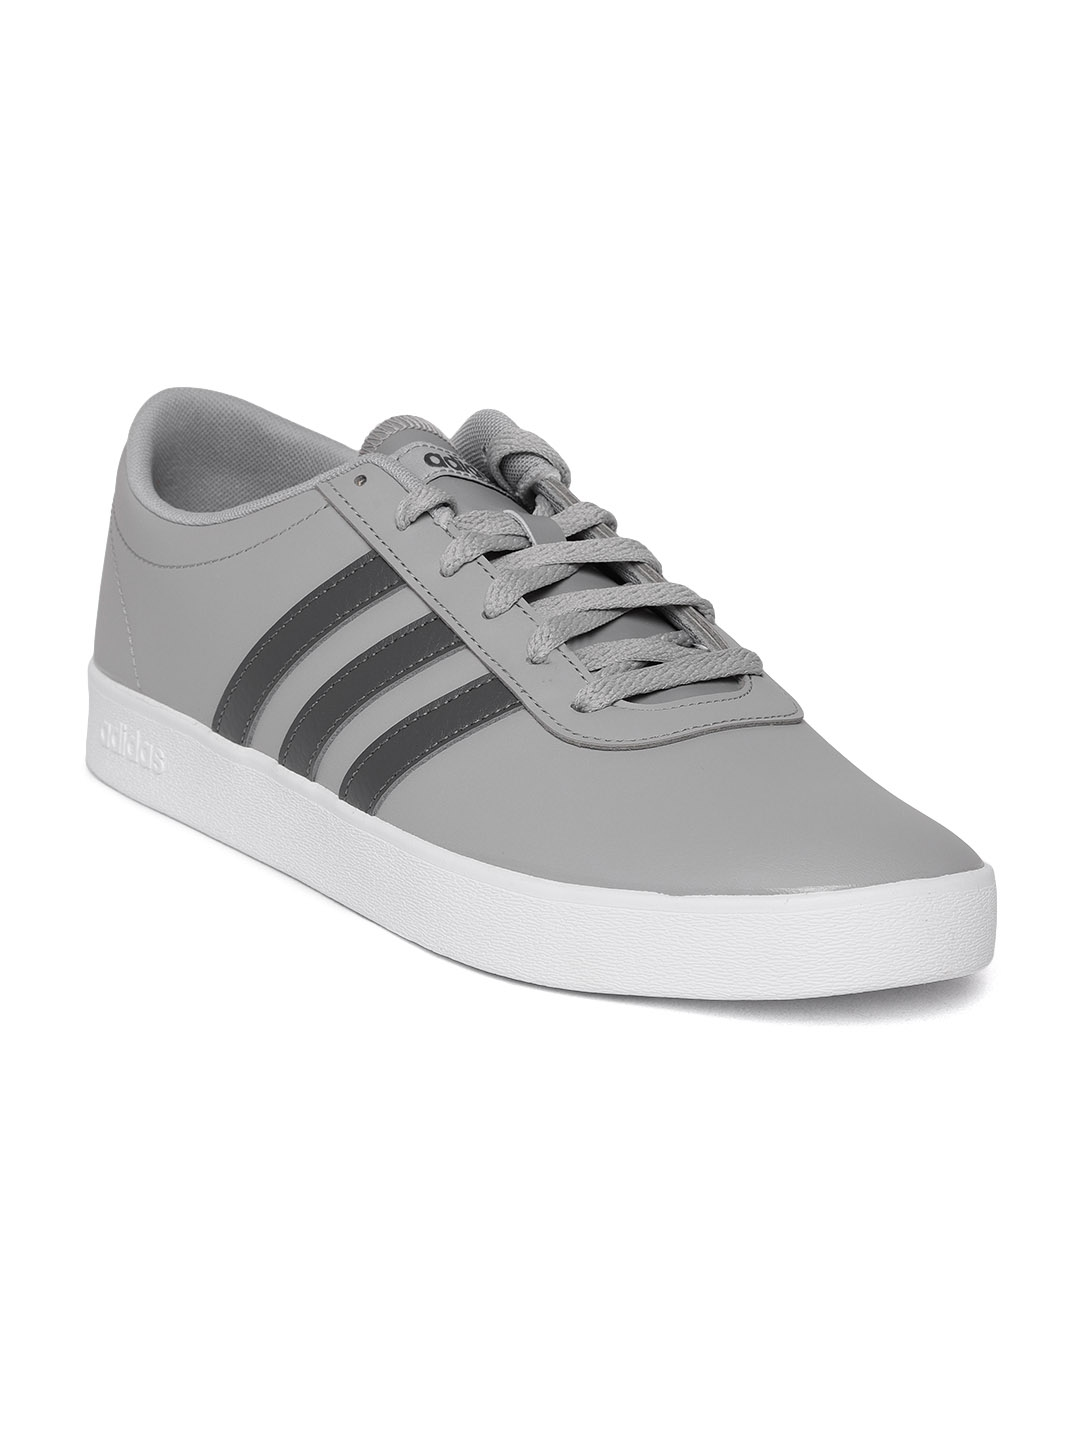 ADIDAS Men Grey Easy VULC 2.0 Skateboarding Shoes